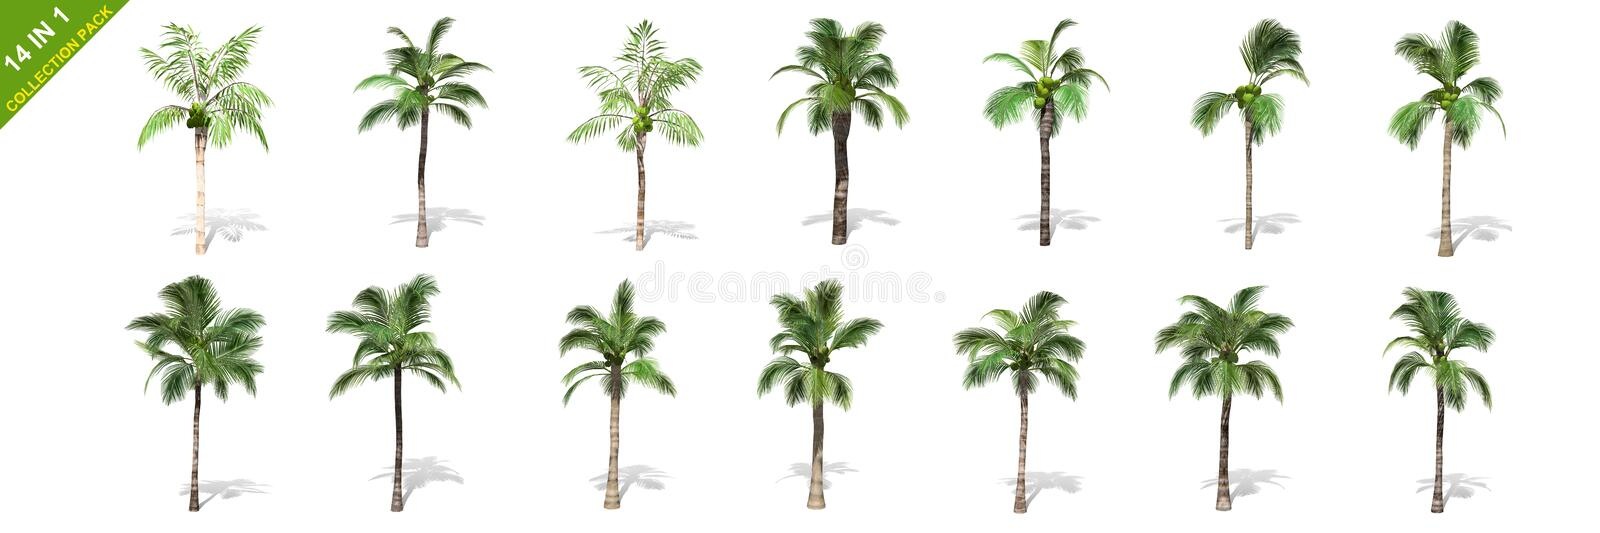 3D rendering - 14 in 1 collection of tall coconut trees isolated over a white background stock illustration